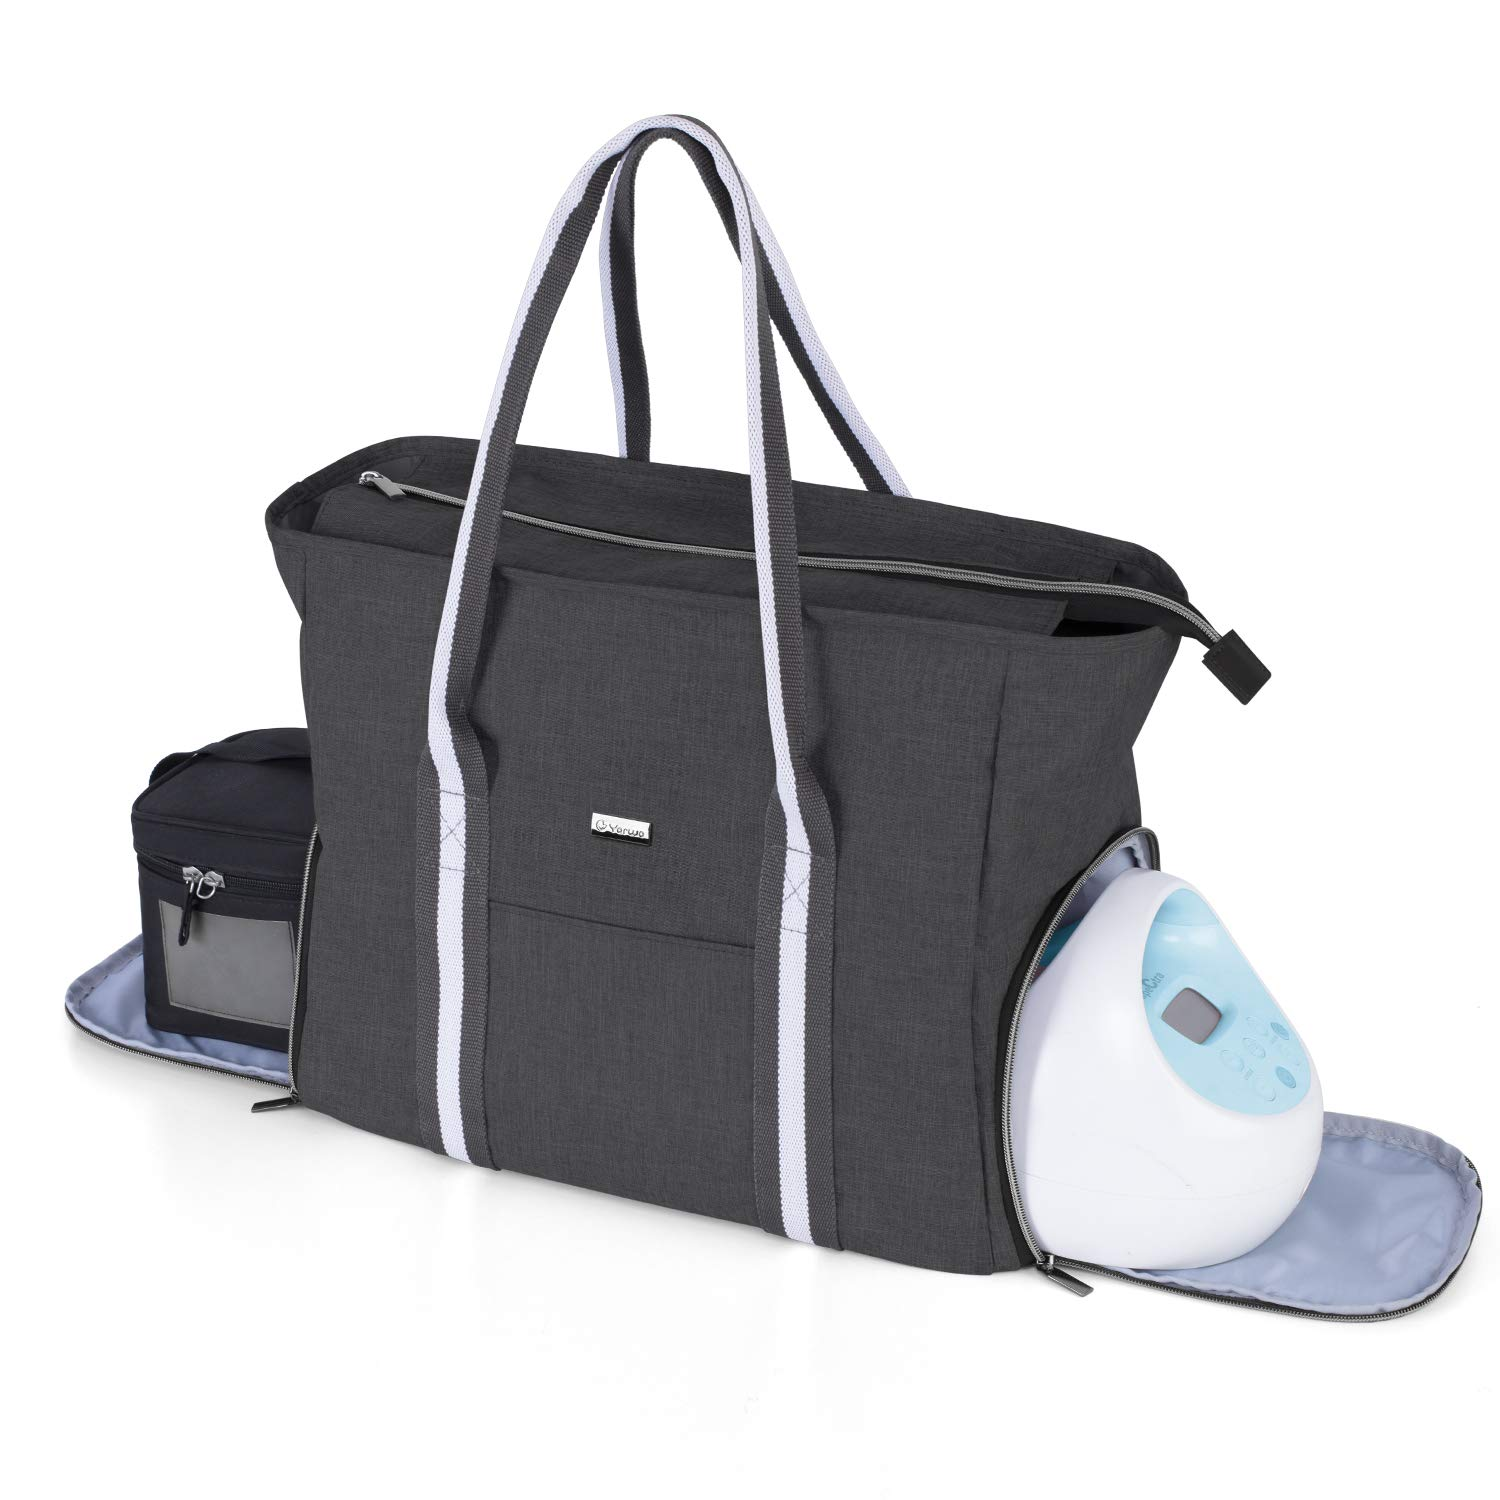 Yarwo Breast Pump Bag with Laptop Sleeve, Portable Travel Tote Bag for Most Major Breast Pump and Cooler Bag, Perfect for Working Nursing Moms, Black